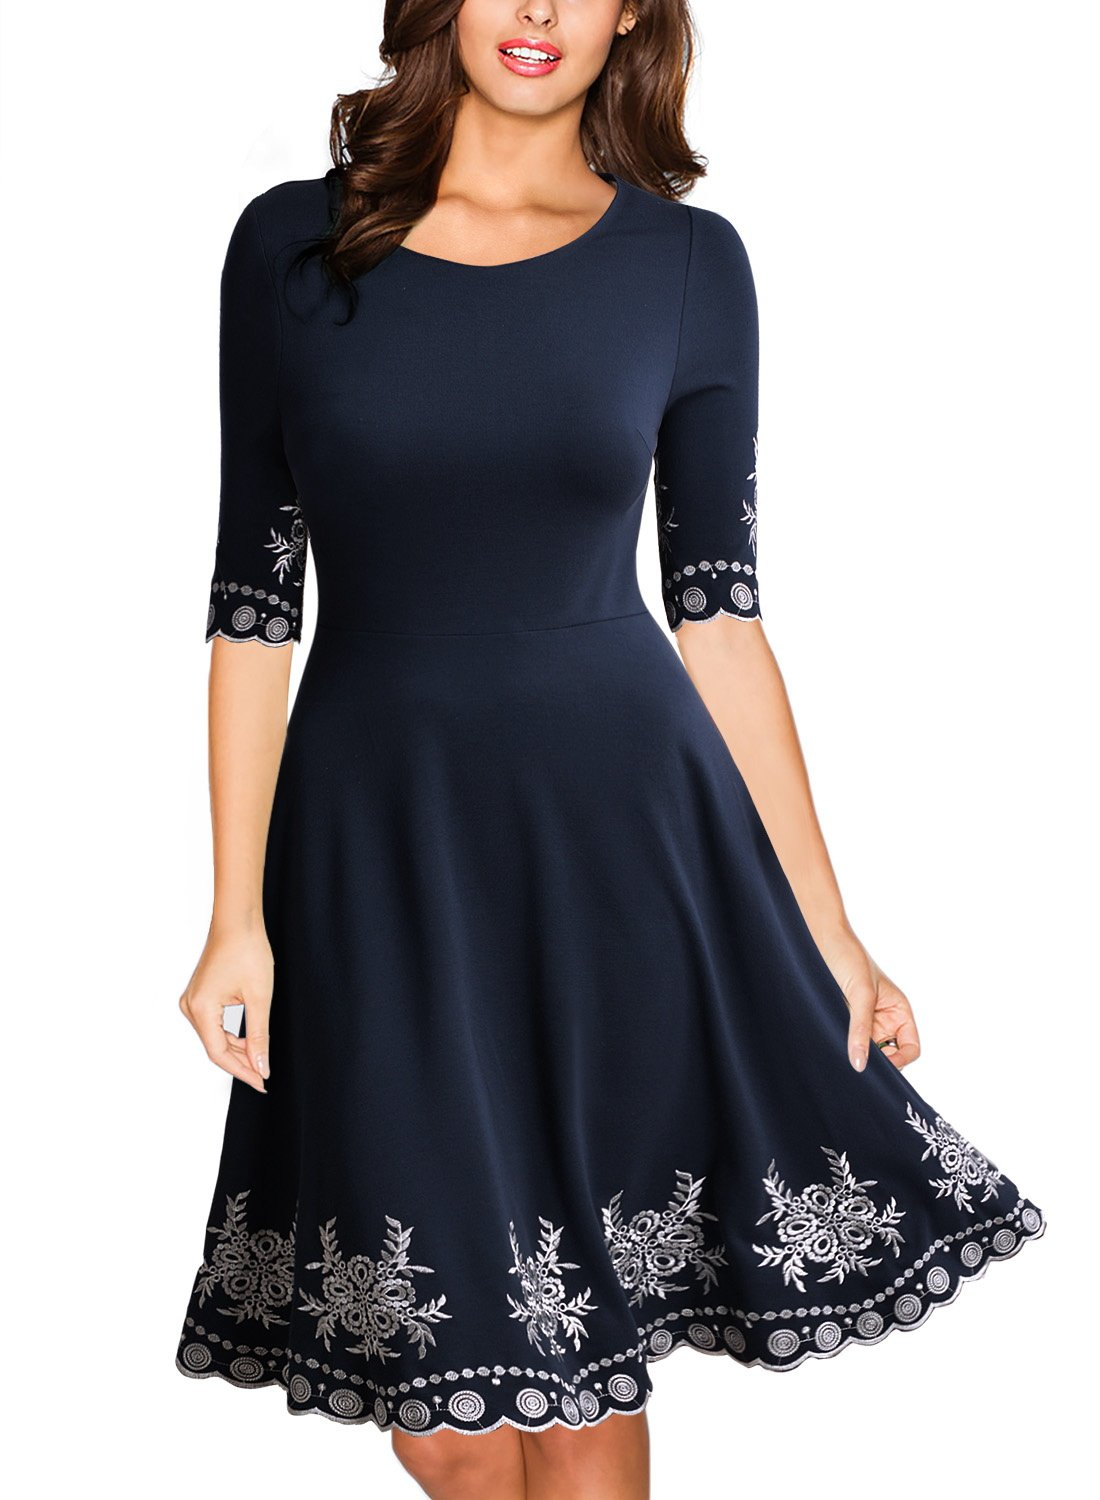 Miusol Women's Vintage Scoop Neck Embroidered Half Sleeve Casual Swing Dress,Navy Blue,Large